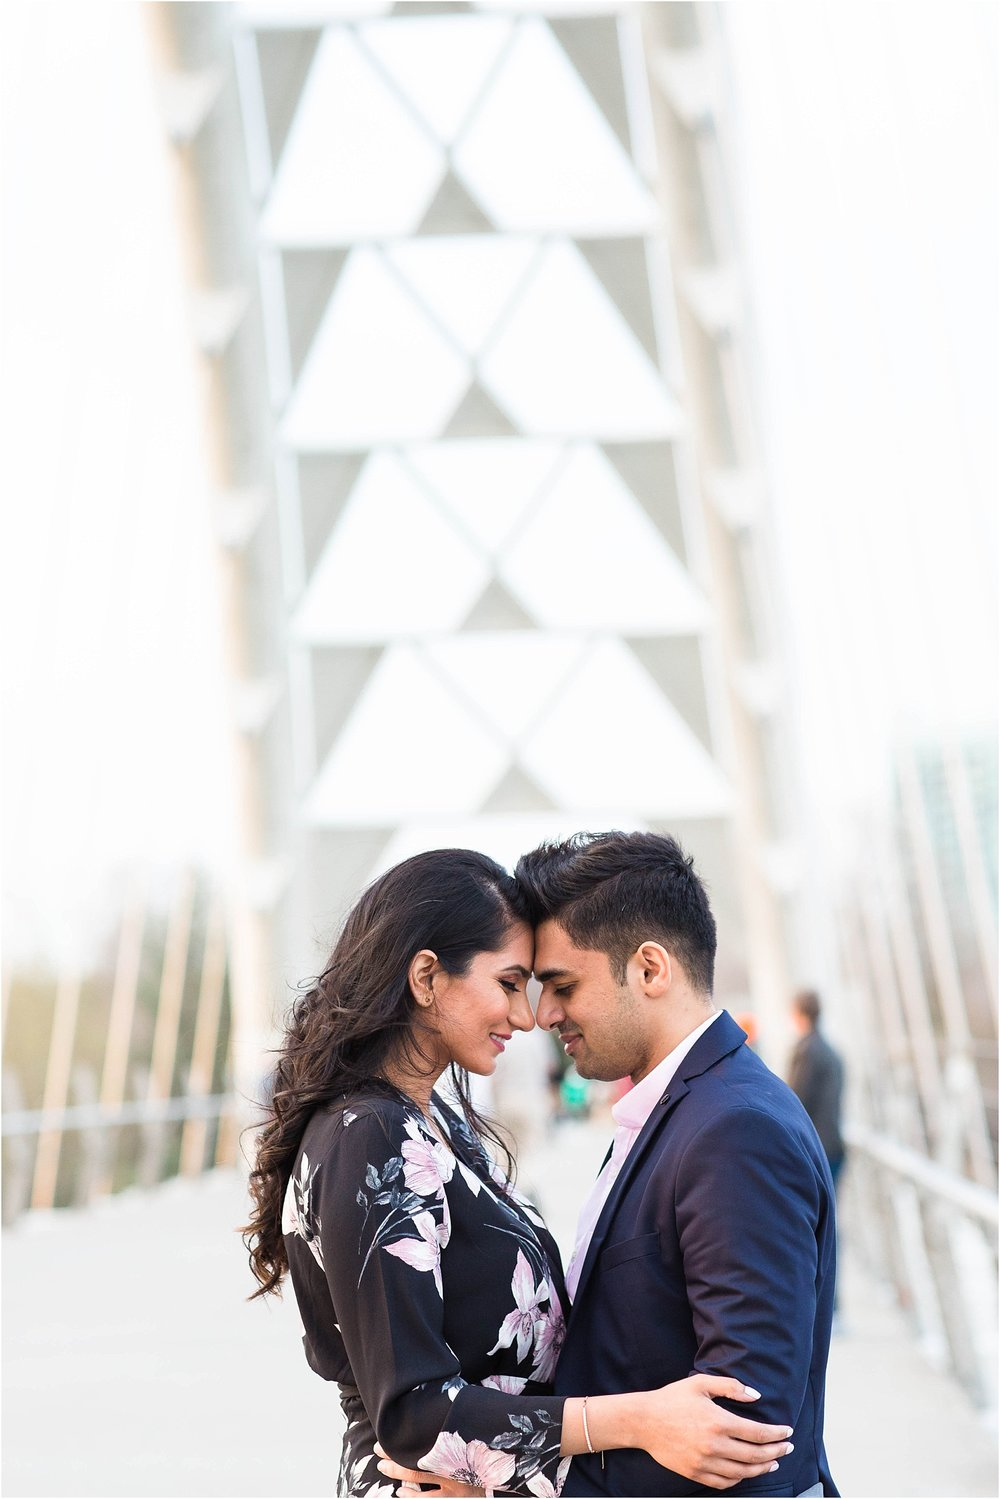 Ryerson-University-Humber-Bay-Bridge-Engagement-Session-Toronto-Mississauga-Brampton-Scarborough-GTA-Pakistani-Indian-Wedding-Engagement-Photographer-Photography_0029.jpg